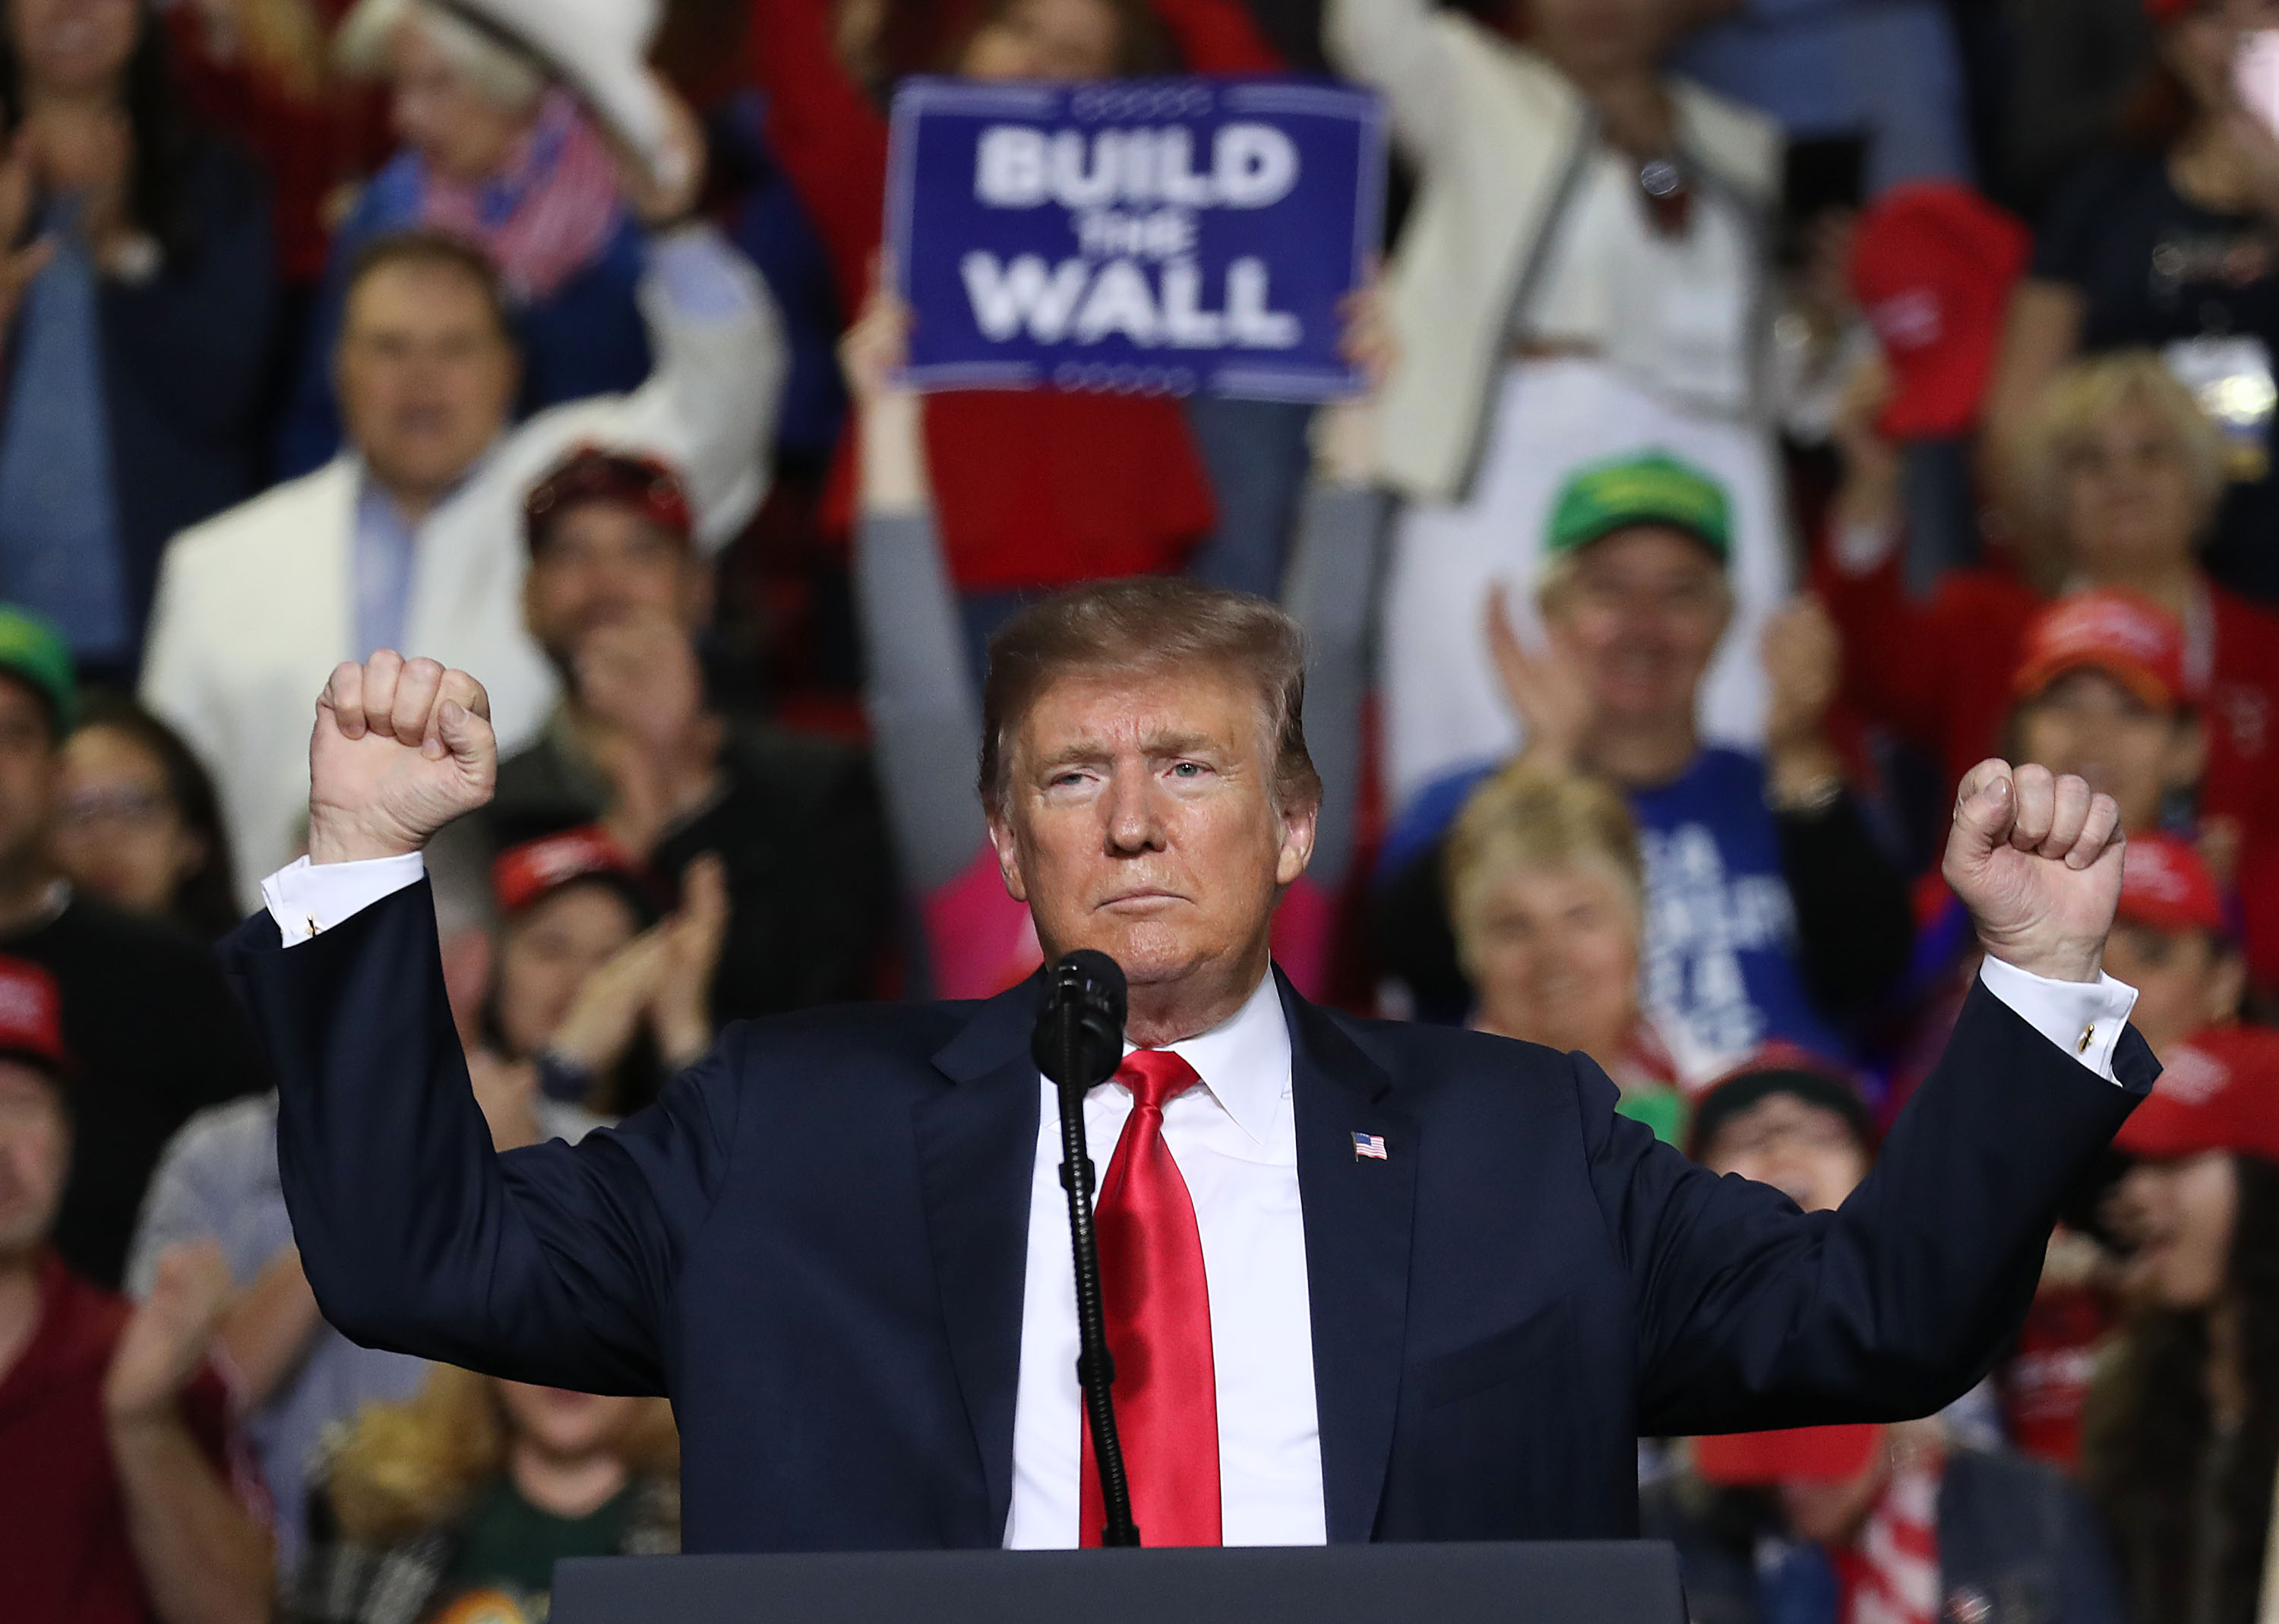 Donald Trump Holds MAGA Rally In El Paso To Discuss Border Security